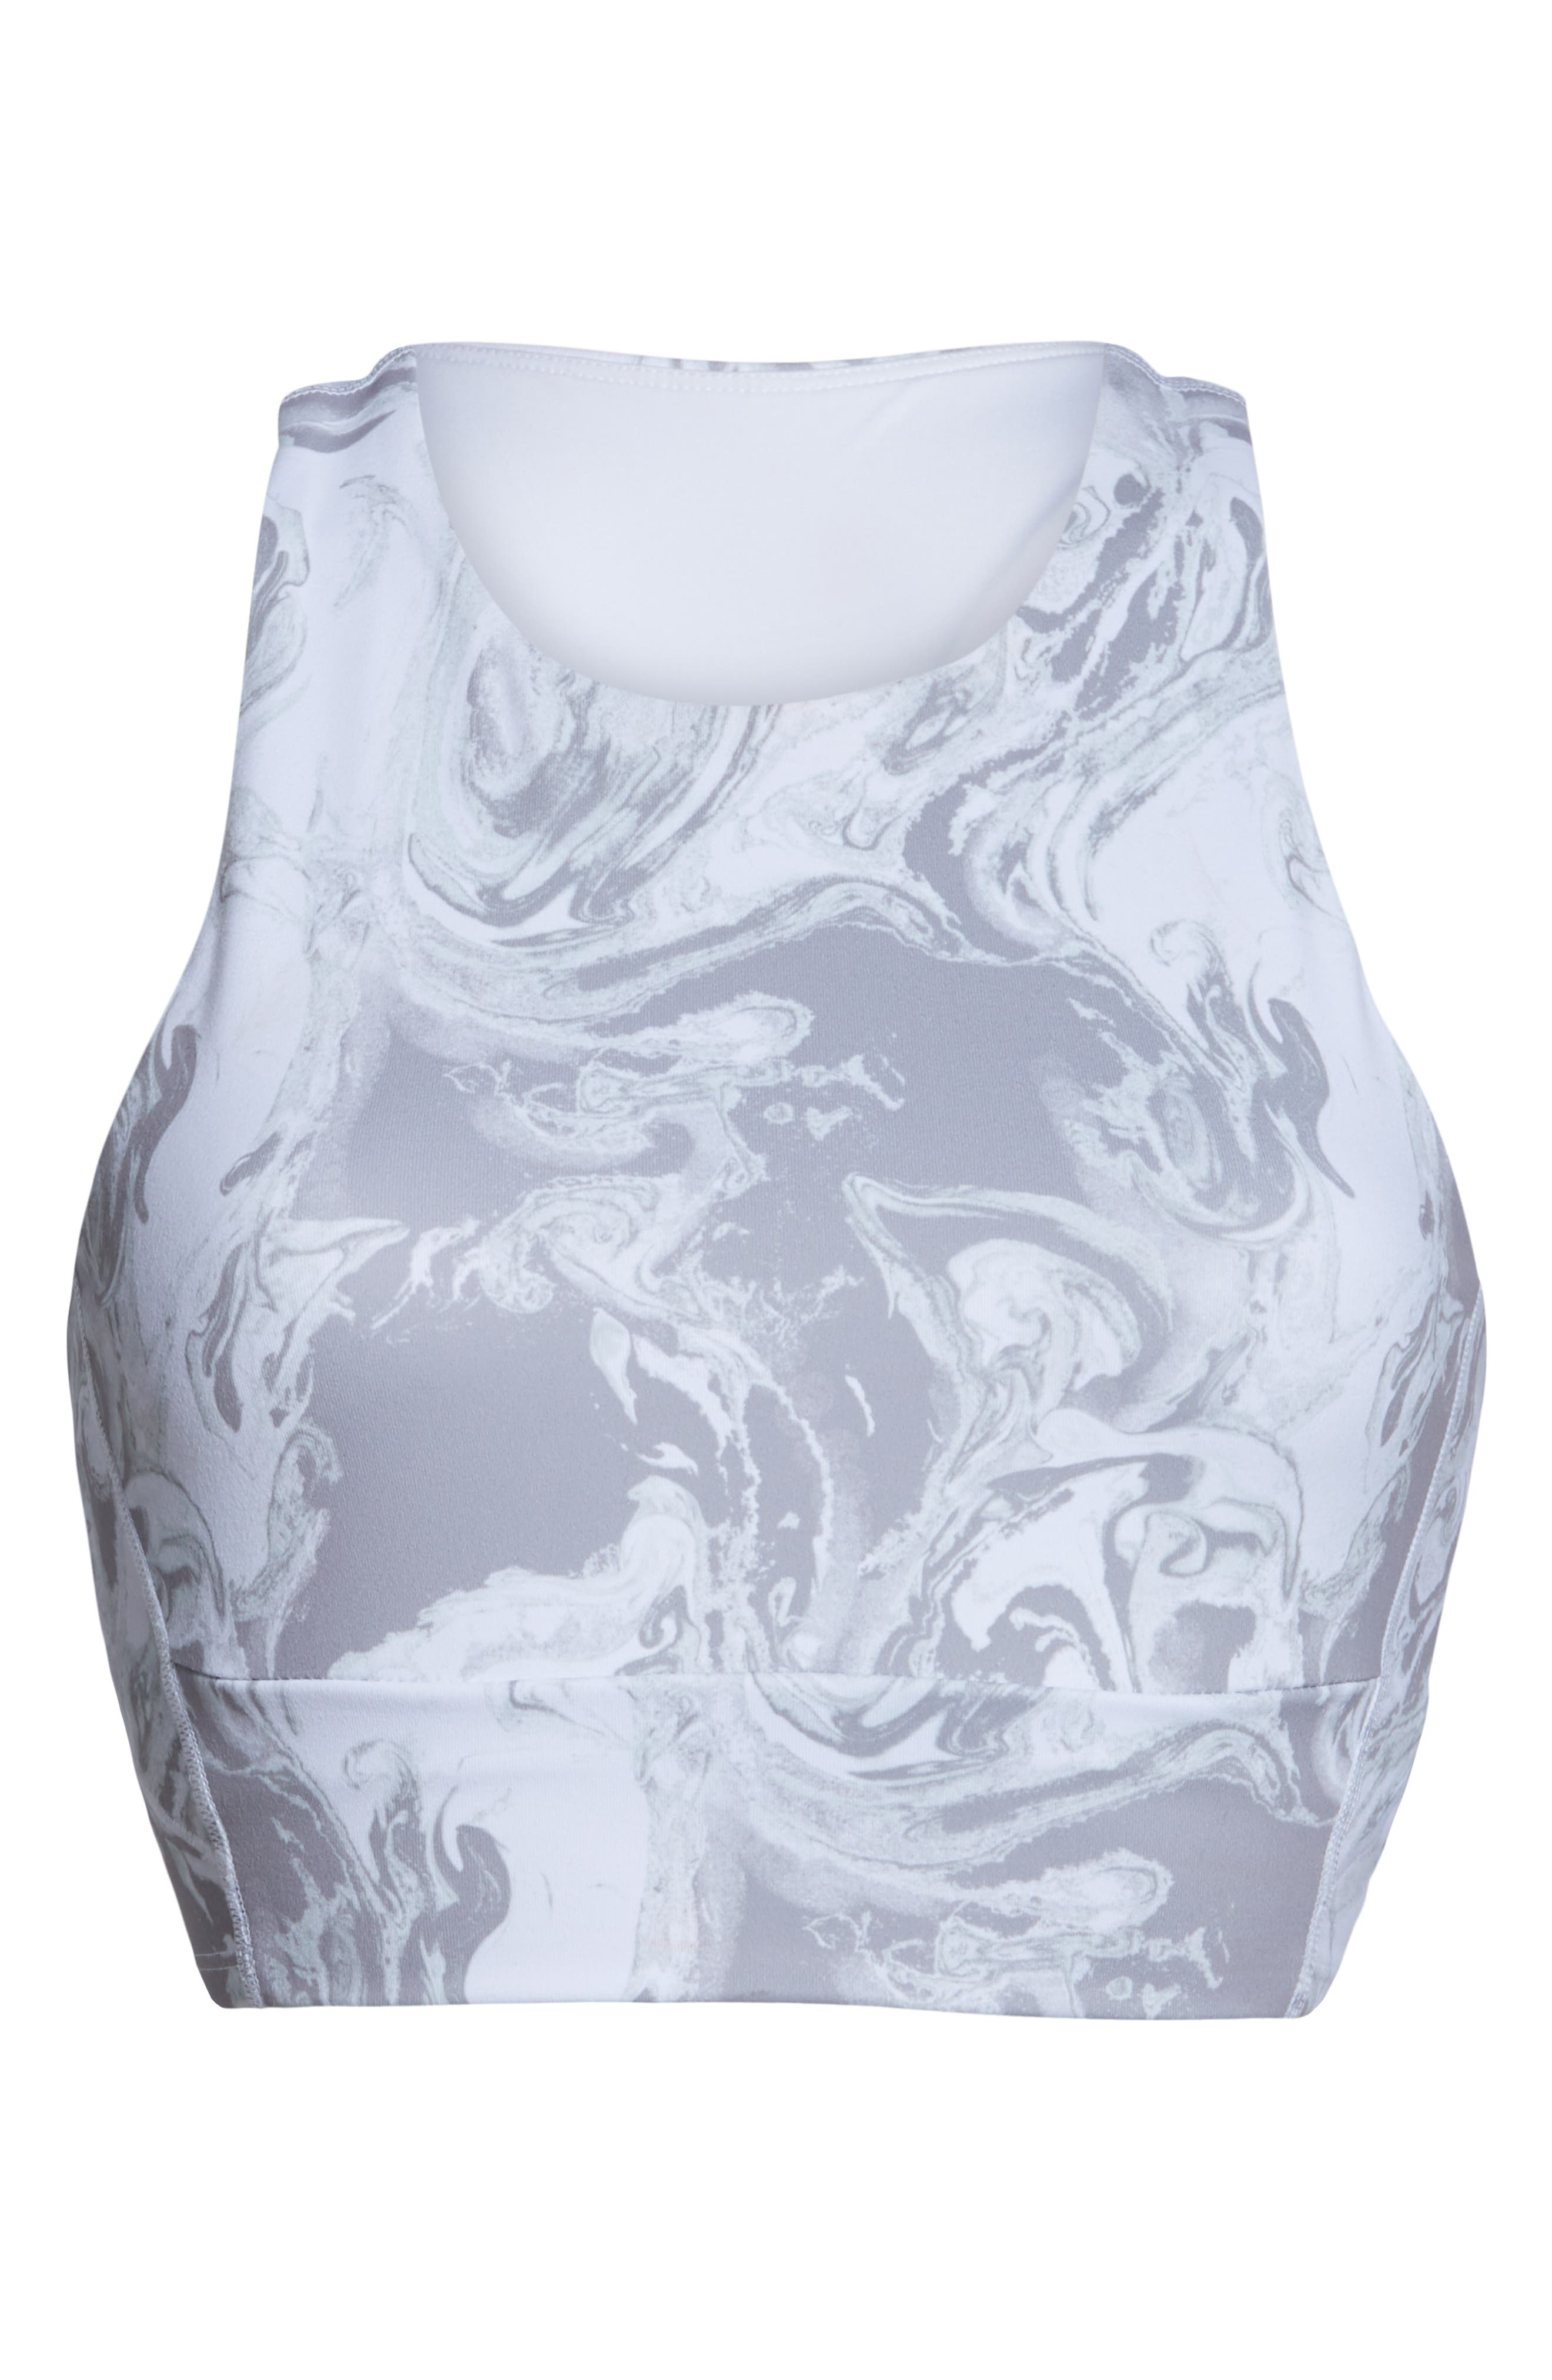 Live In Racerback Bra,                             Alternate thumbnail 7, color,                             GREY SCONCE PRETTY MARBLE